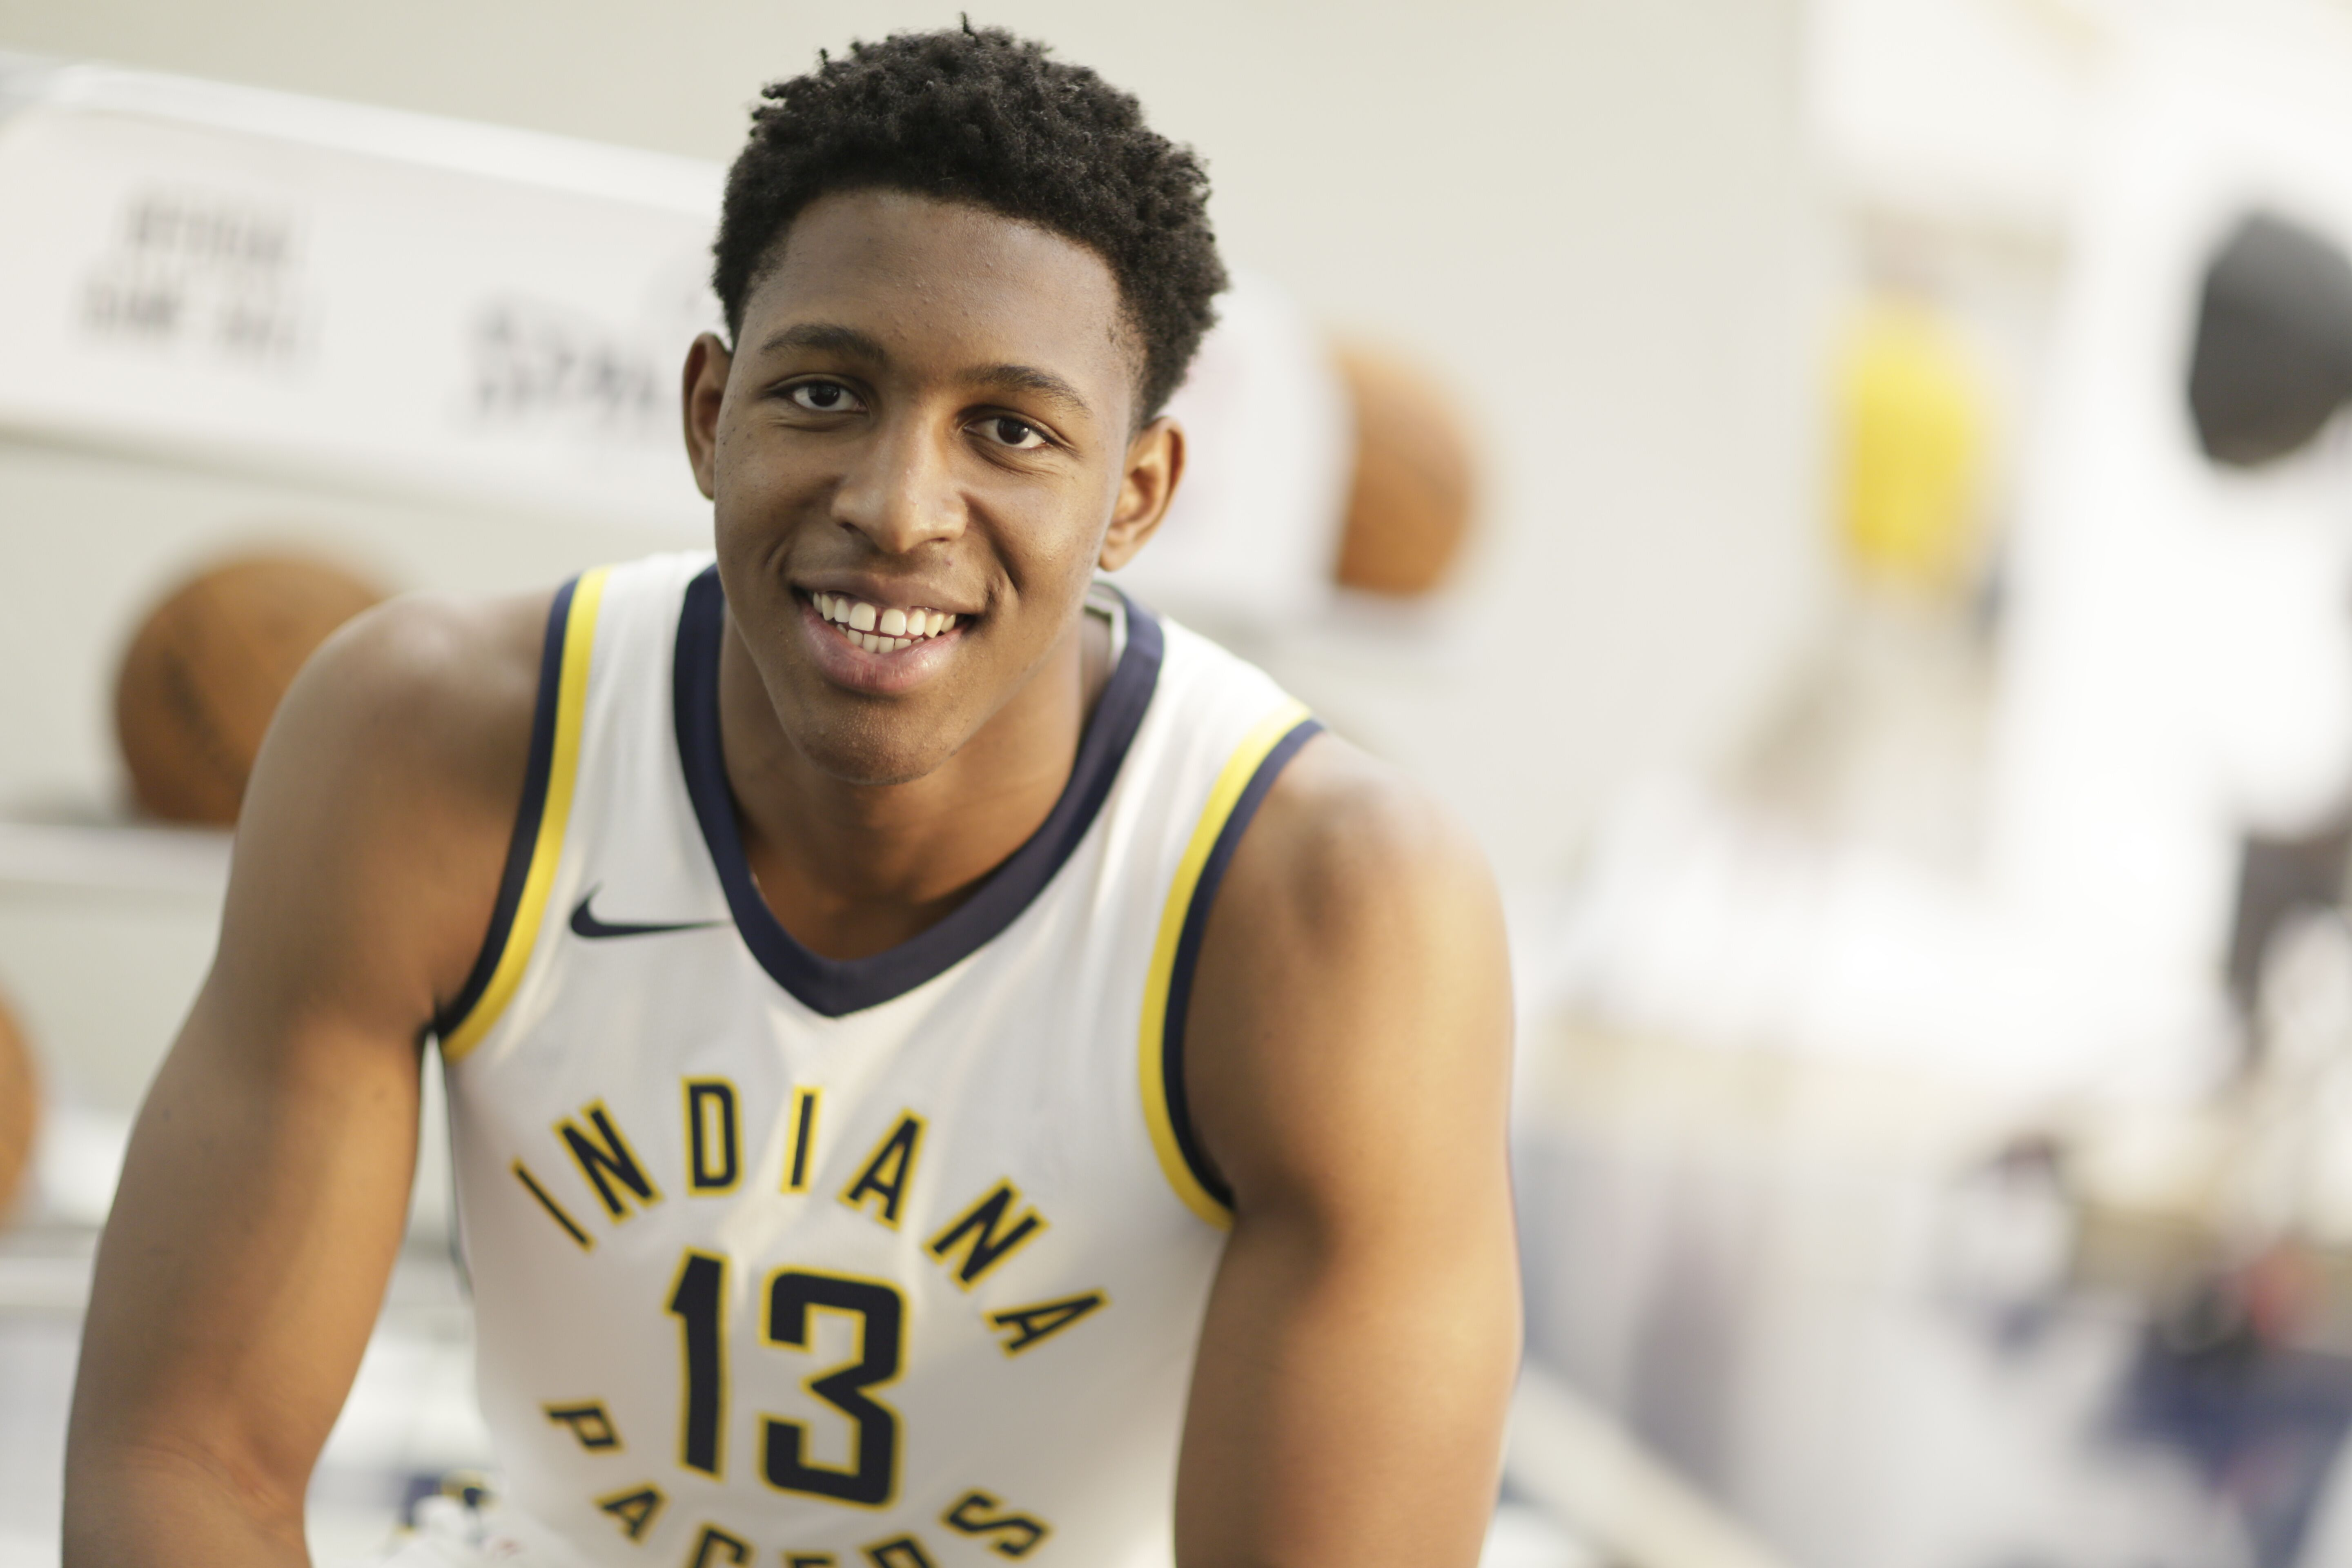 856320324-2017-2018-indiana-pacers-media-day.jpg